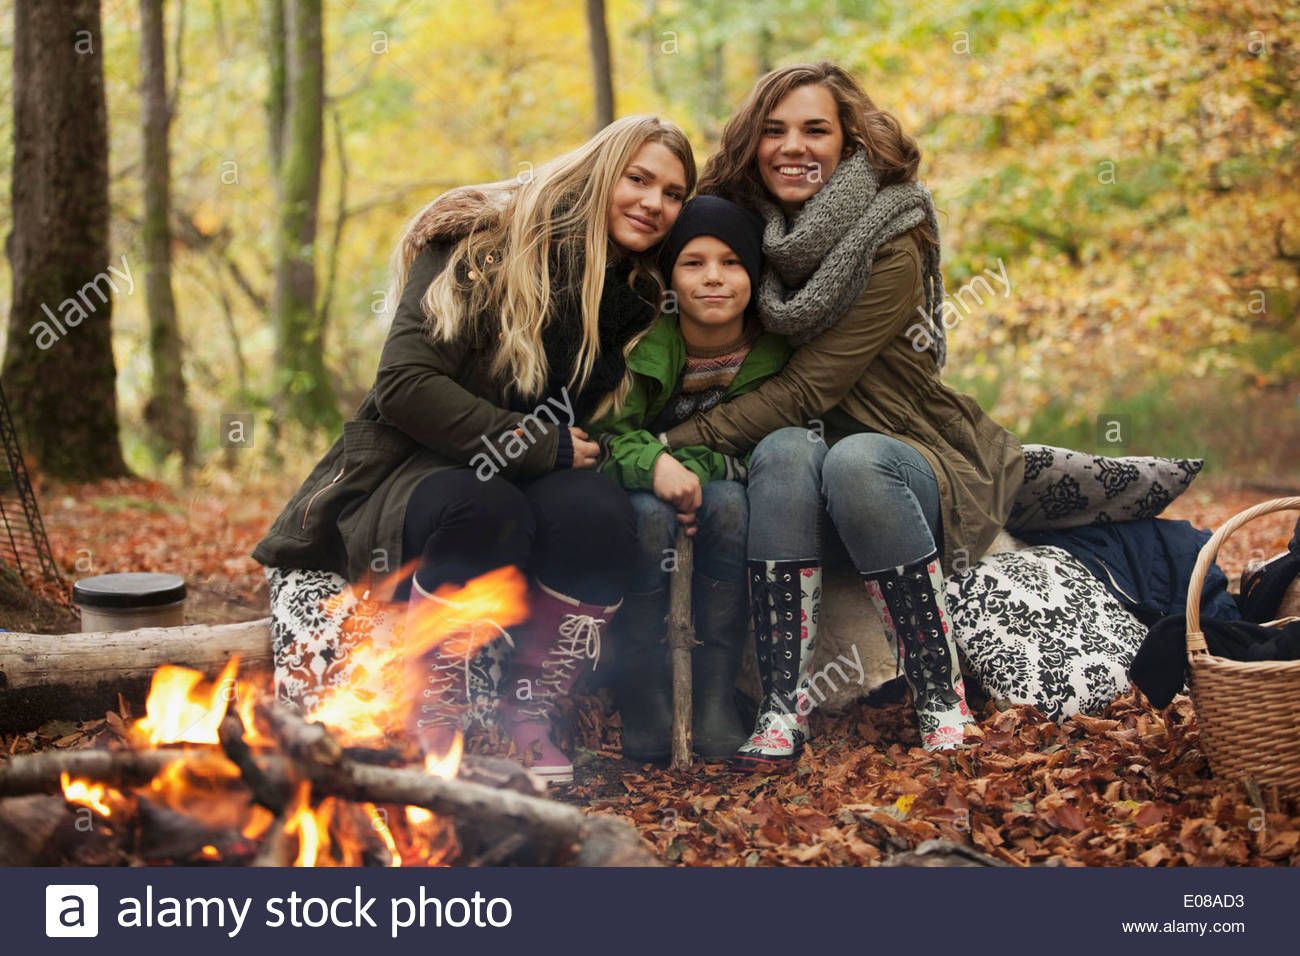 Portrait of sibling camping in forest - Stock Image